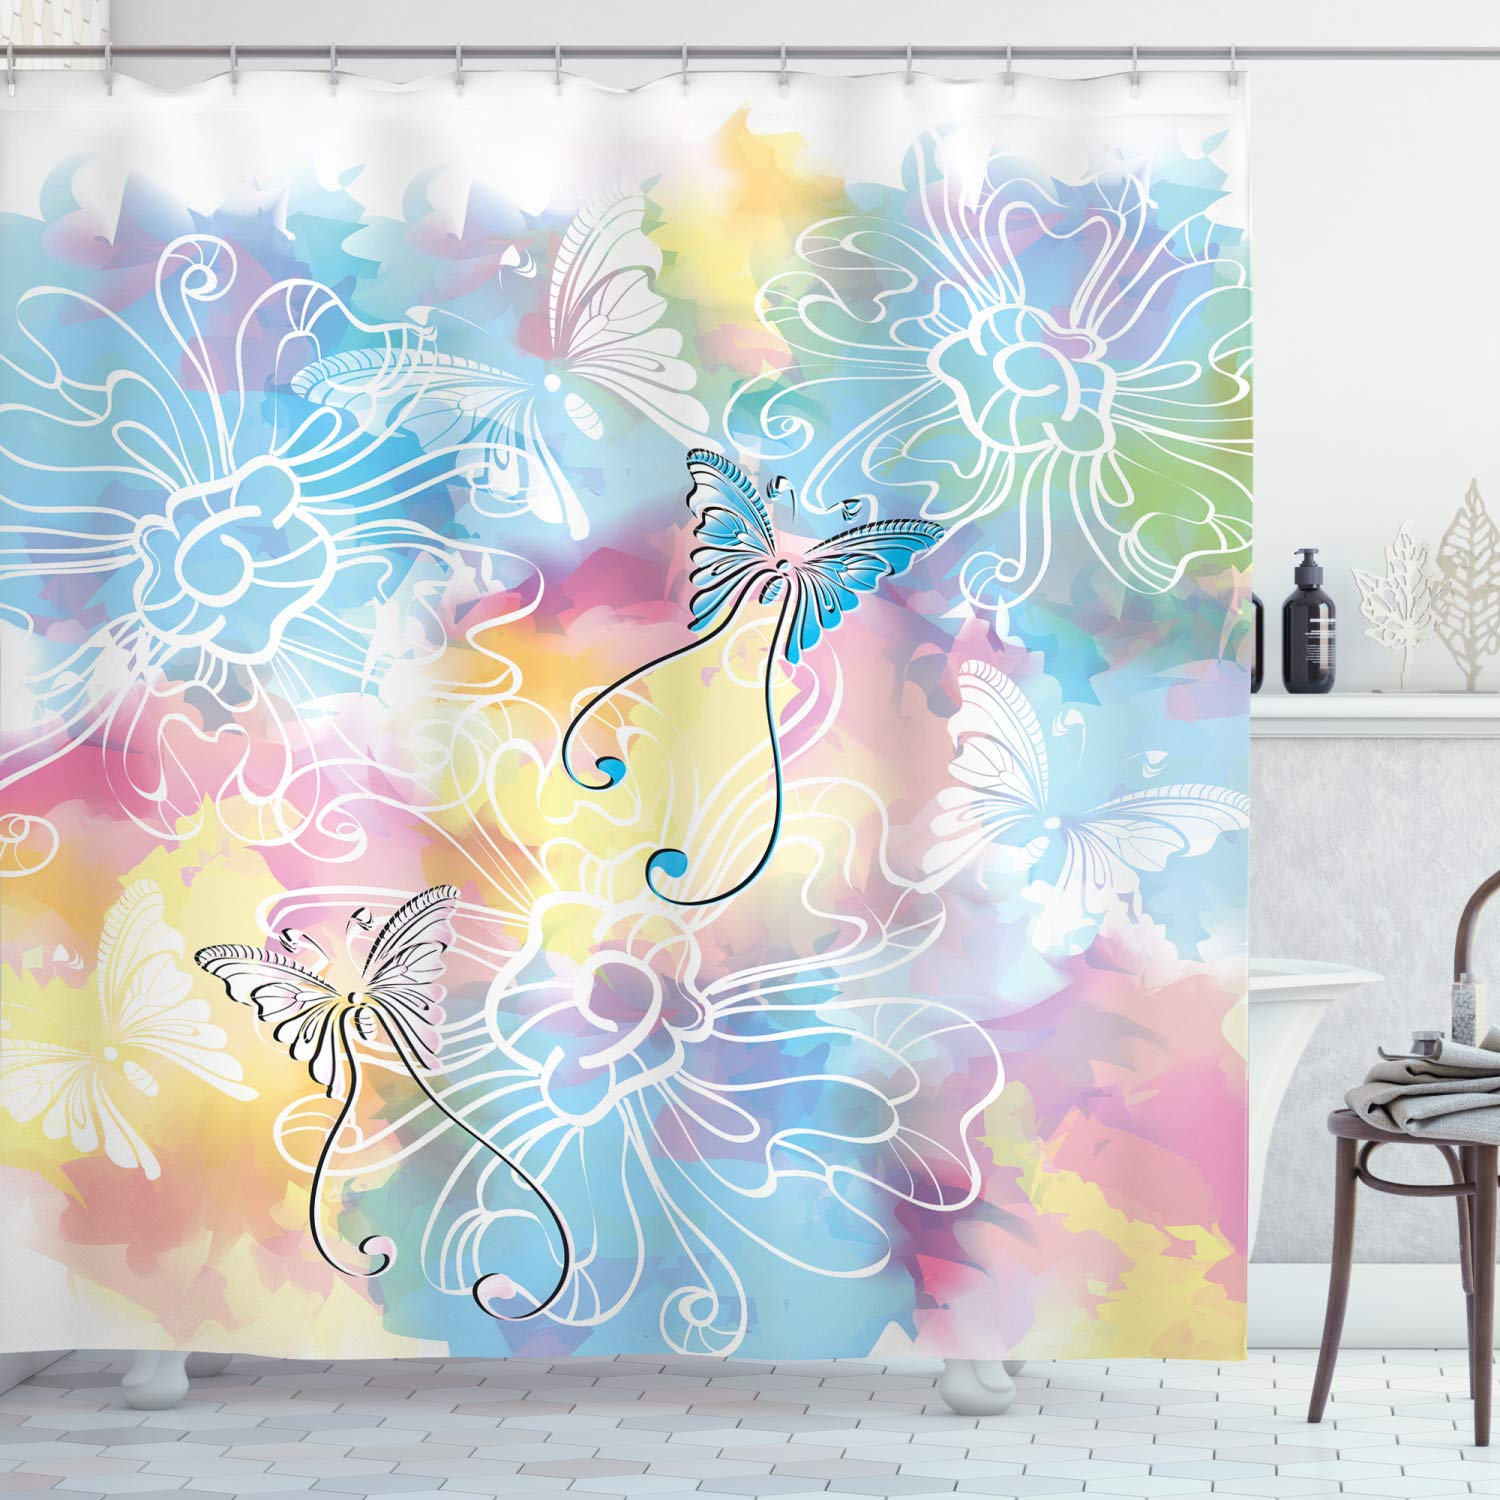 """Ambesonne Colorful Shower Curtain, Romantic Brushstroked Backdrop with Haze Blur Splash Features and Moth Antler, Cloth Fabric Bathroom Decor Set with Hooks, 70"""" Long, Blue Pink"""